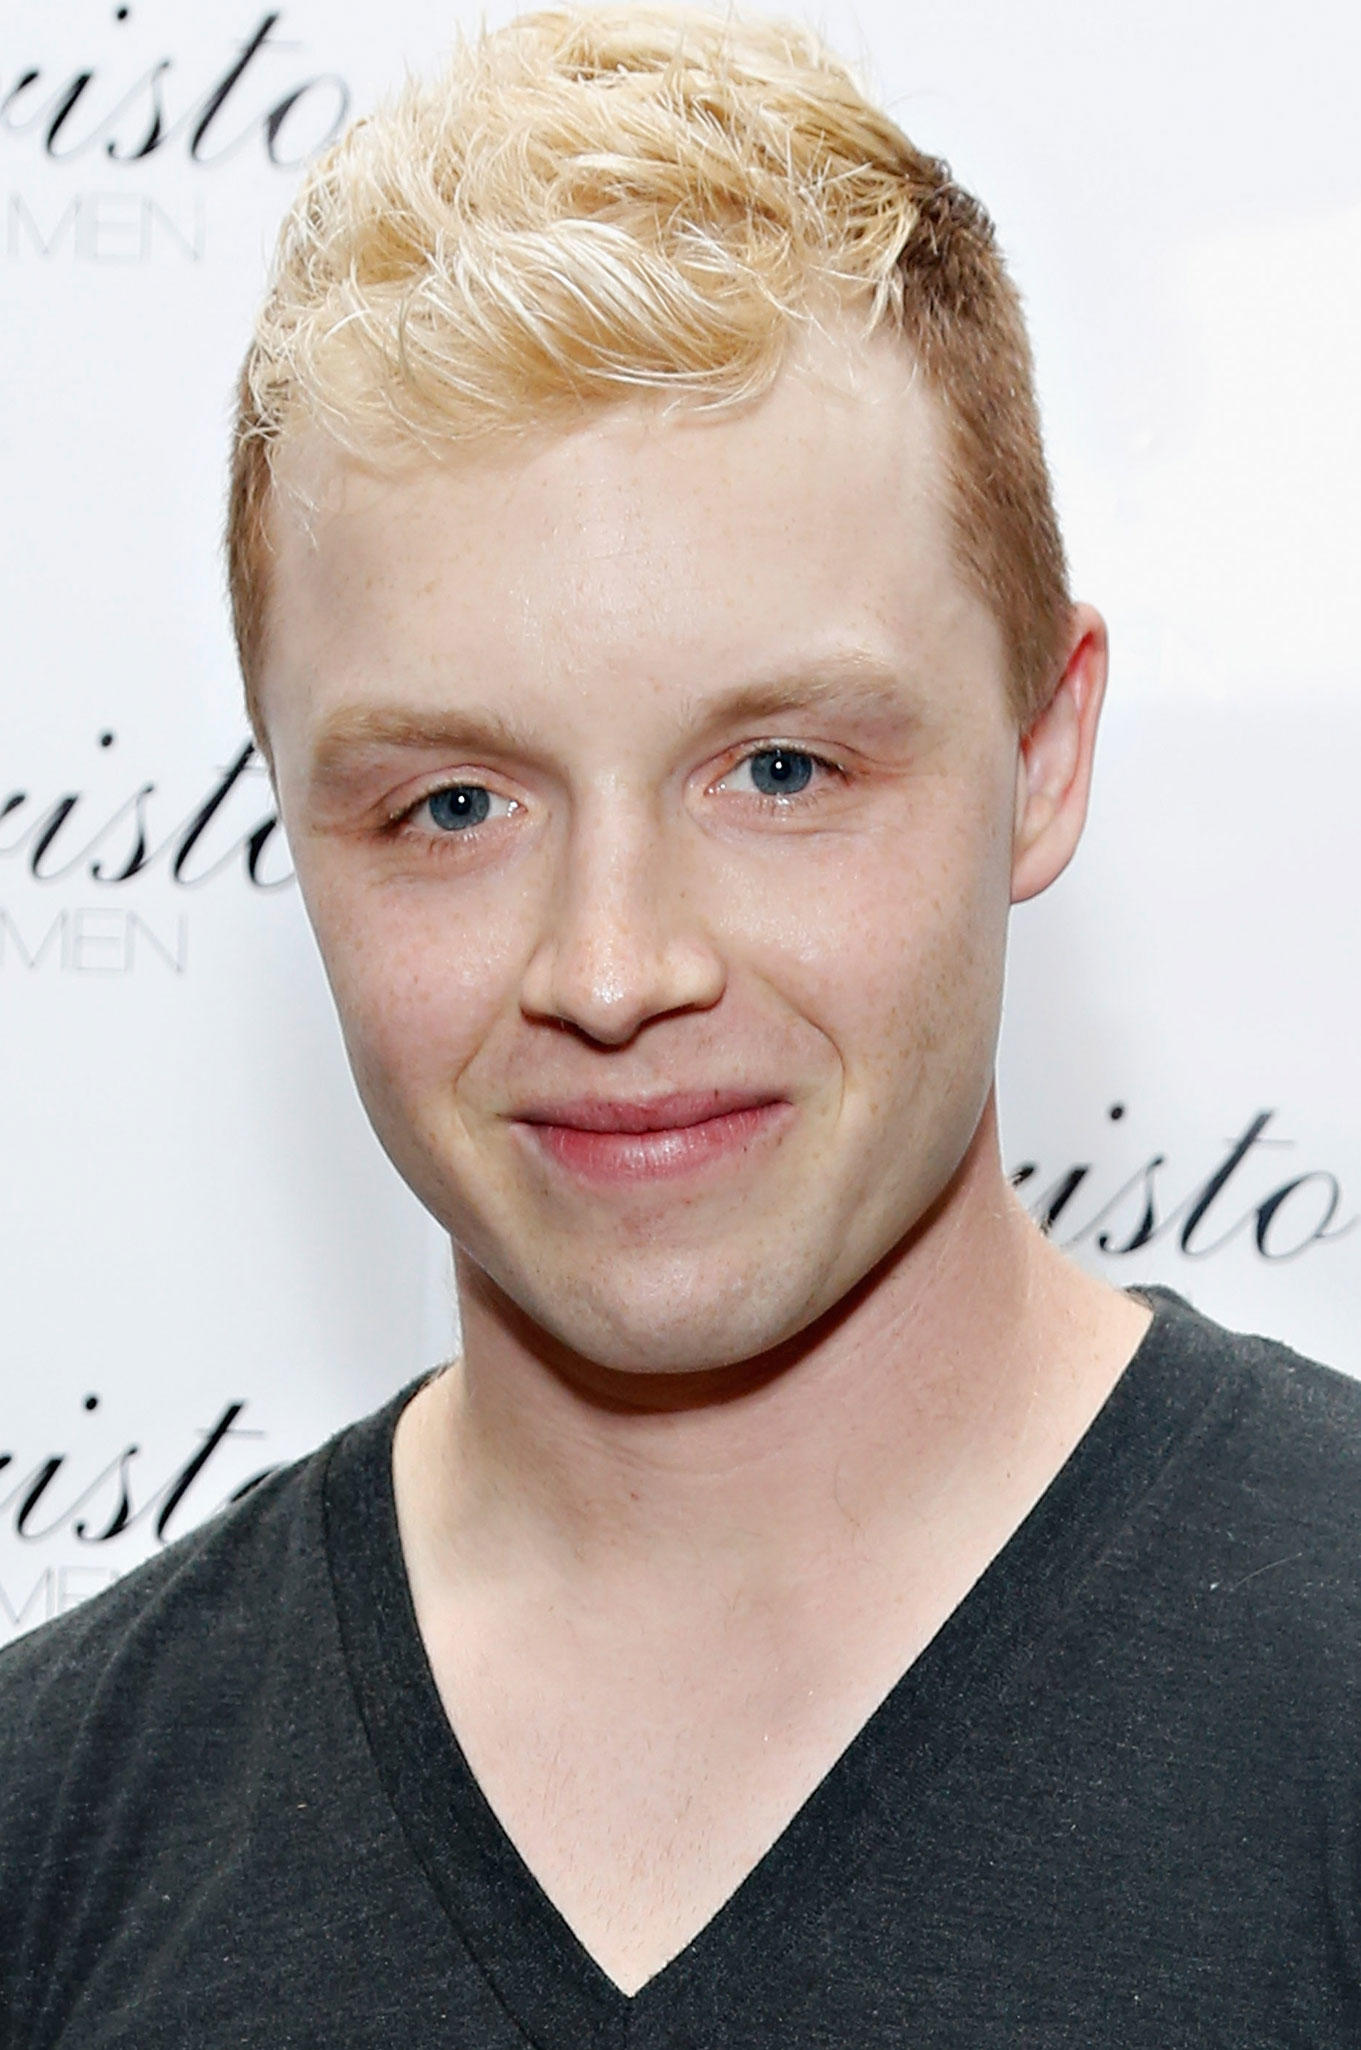 Discussion on this topic: Karla Jensen, noel-fisher/